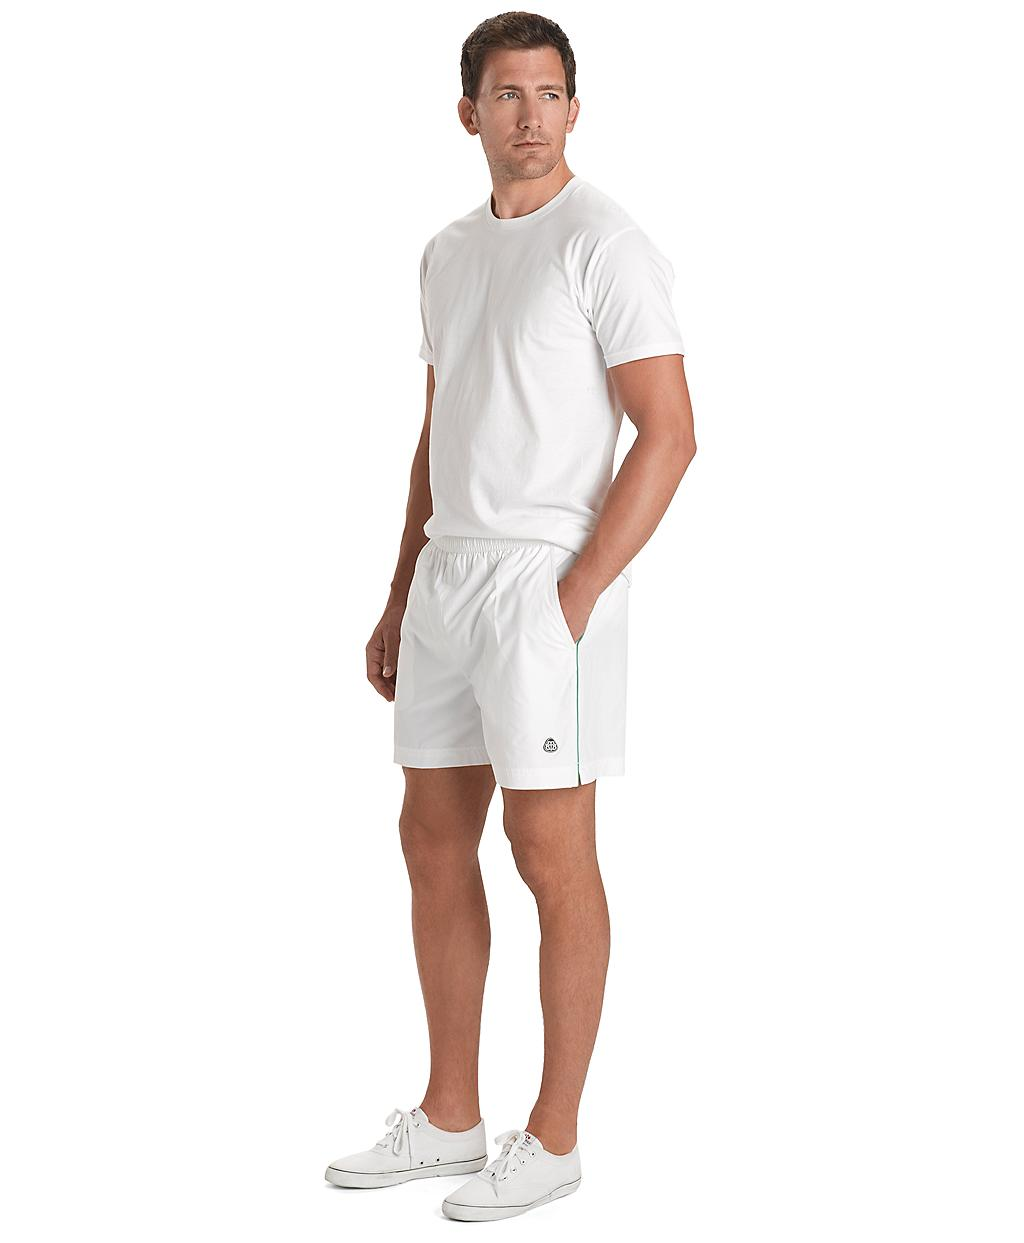 good tennis outfits for men 19